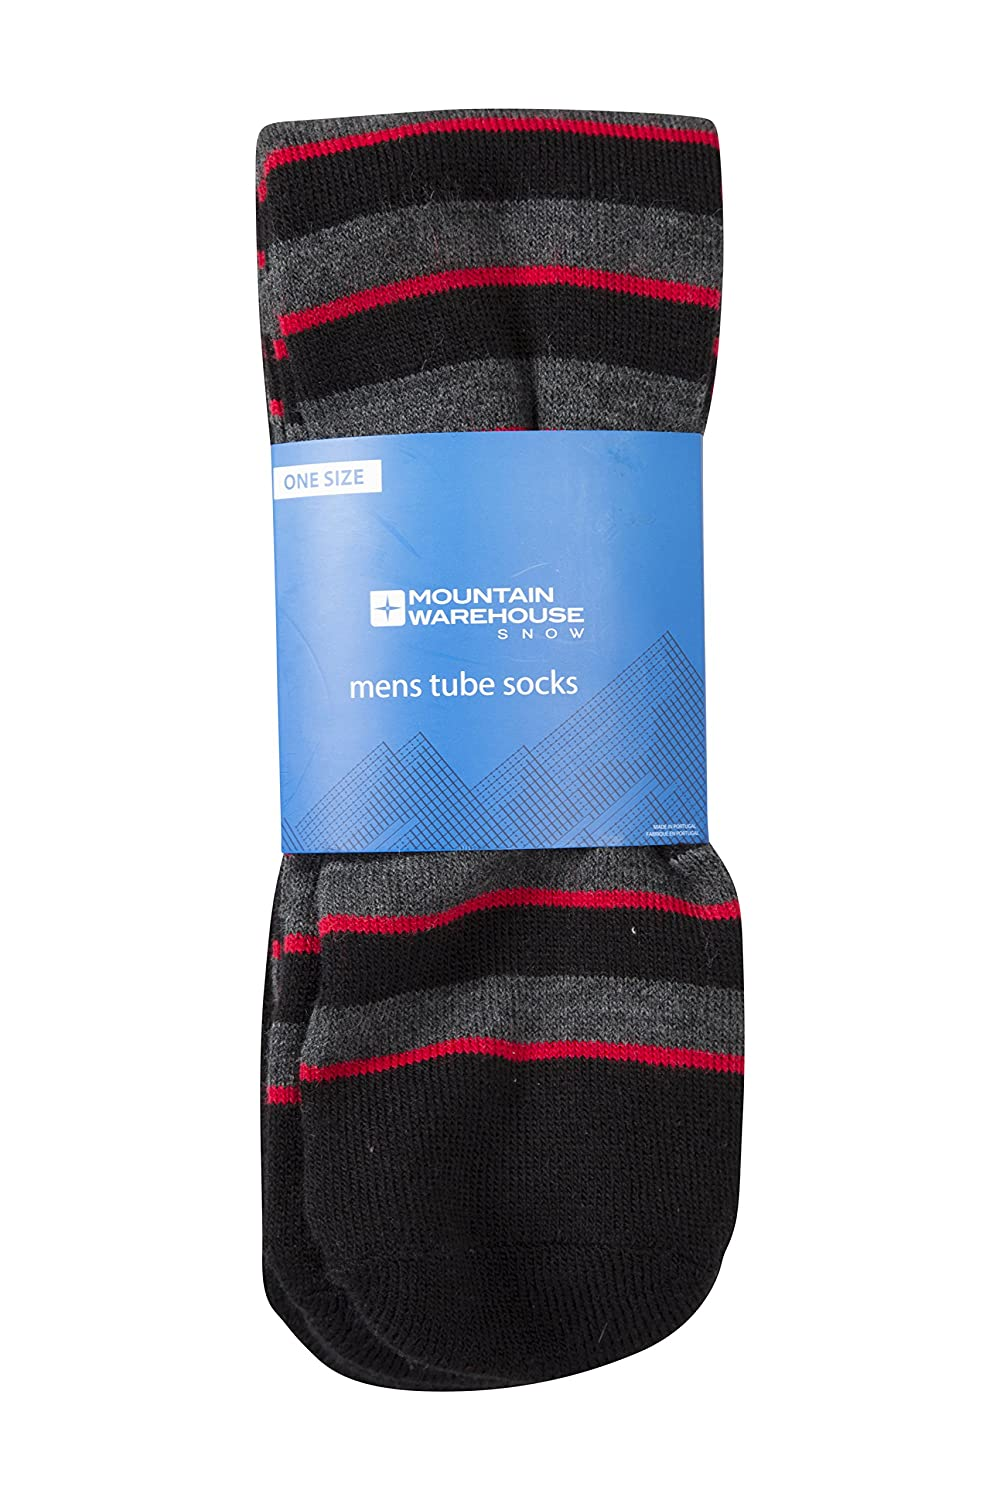 Mountain Warehouse Patterned Ski Tubes - 2 Pack - Lightweight, Extra Warm with Fine Toe Seams for Comfort & Easy Care - One Size Fits All - a Must Have Item for the Winter Orange 024768036001